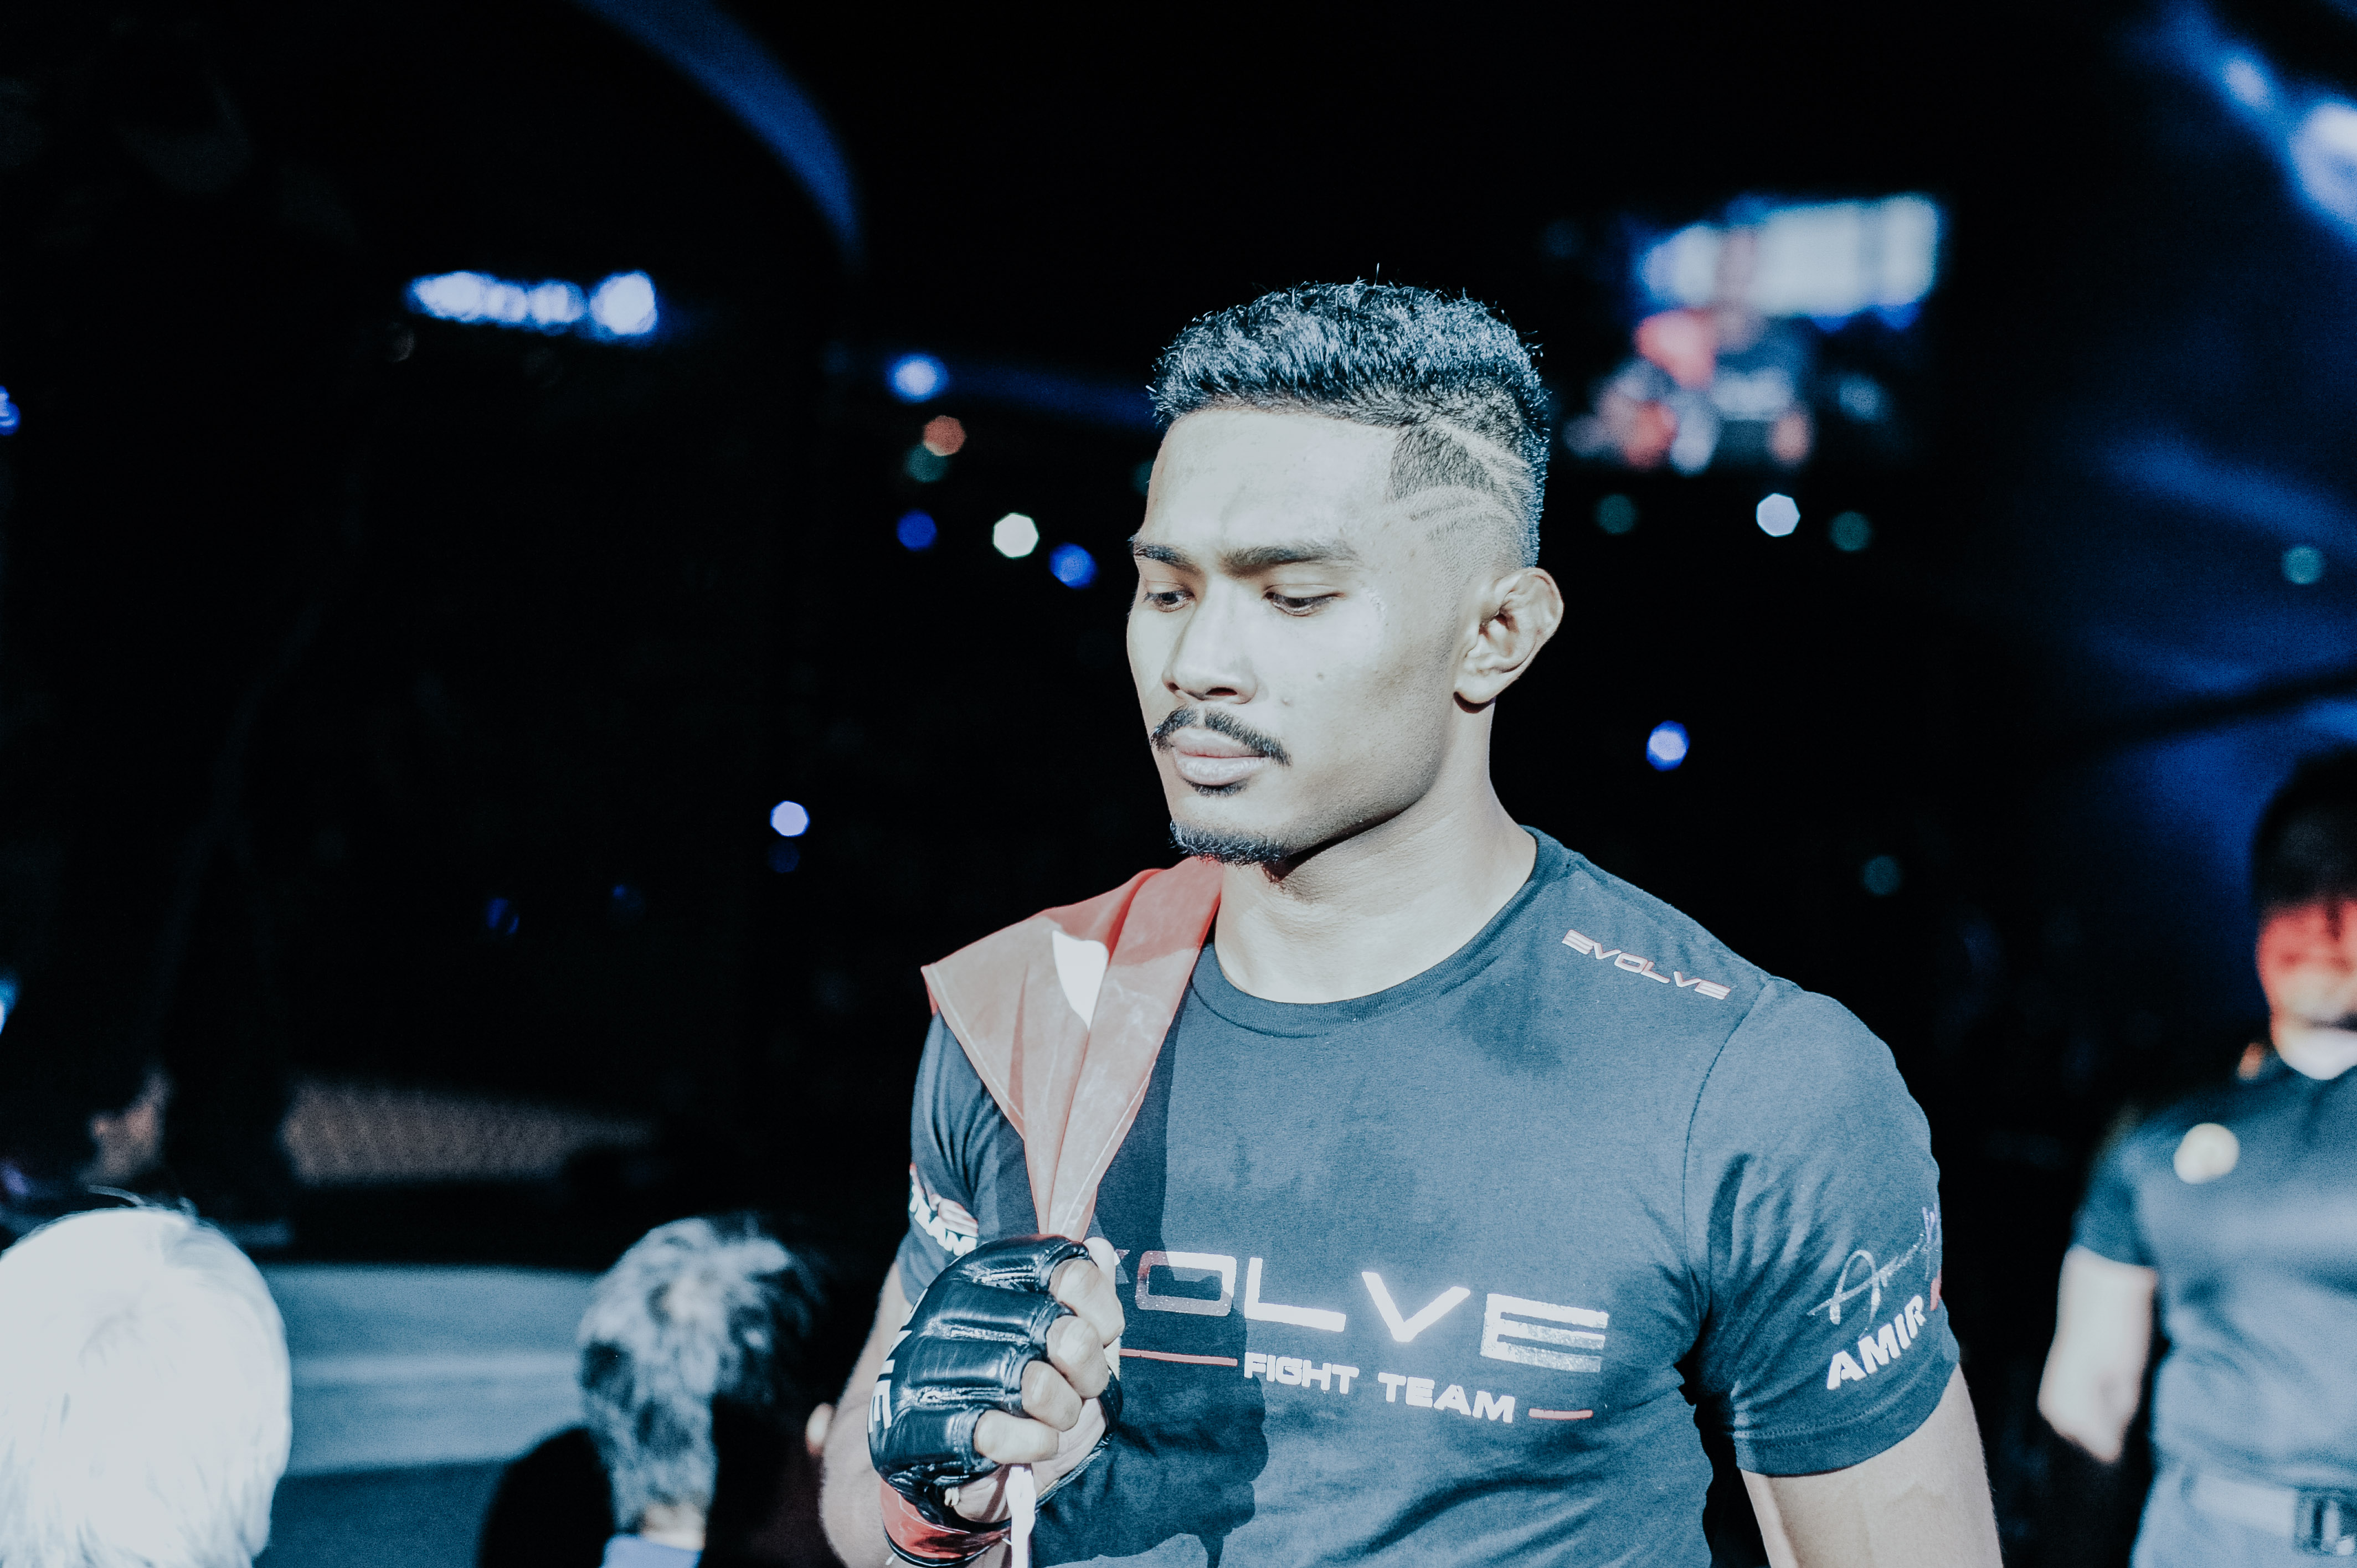 Forged in the crucible of adversity and fortitude - ONE Championship's Amir Khan paving way for a new generation -